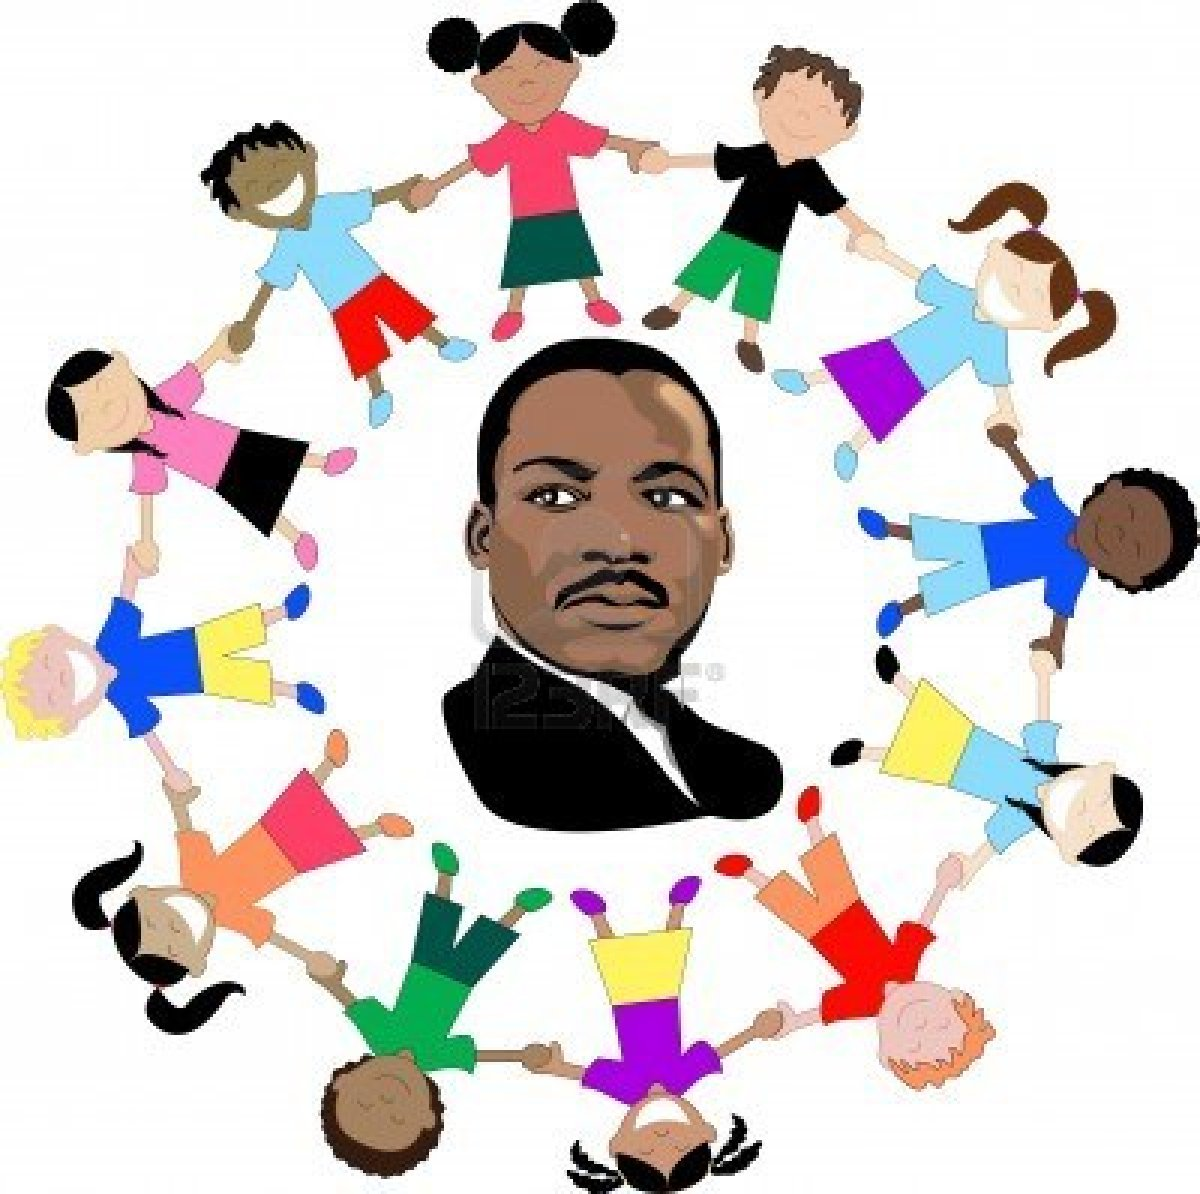 Martin Luther King Jr Worksheets For Kids Who was martin luther king ...